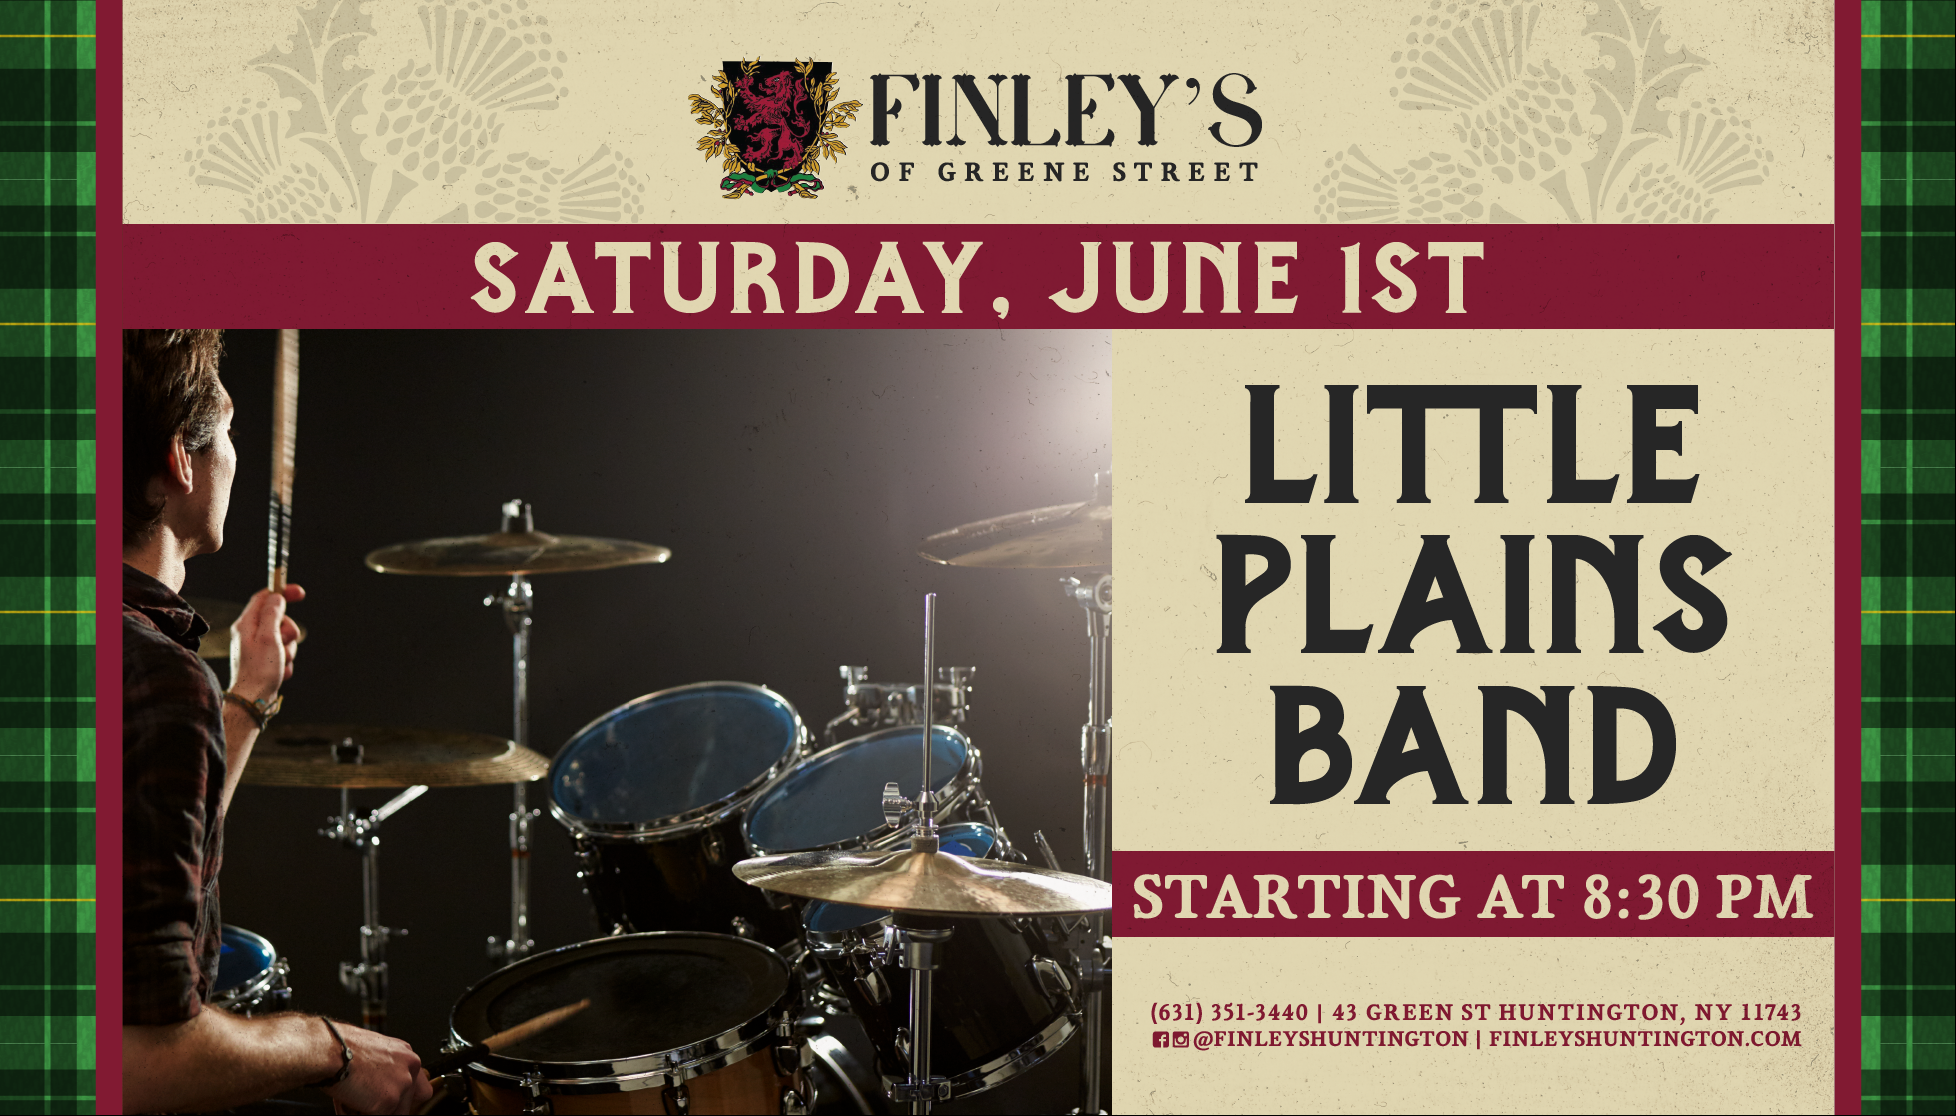 Flyer for the Little Plains Band on Saturday June 1st